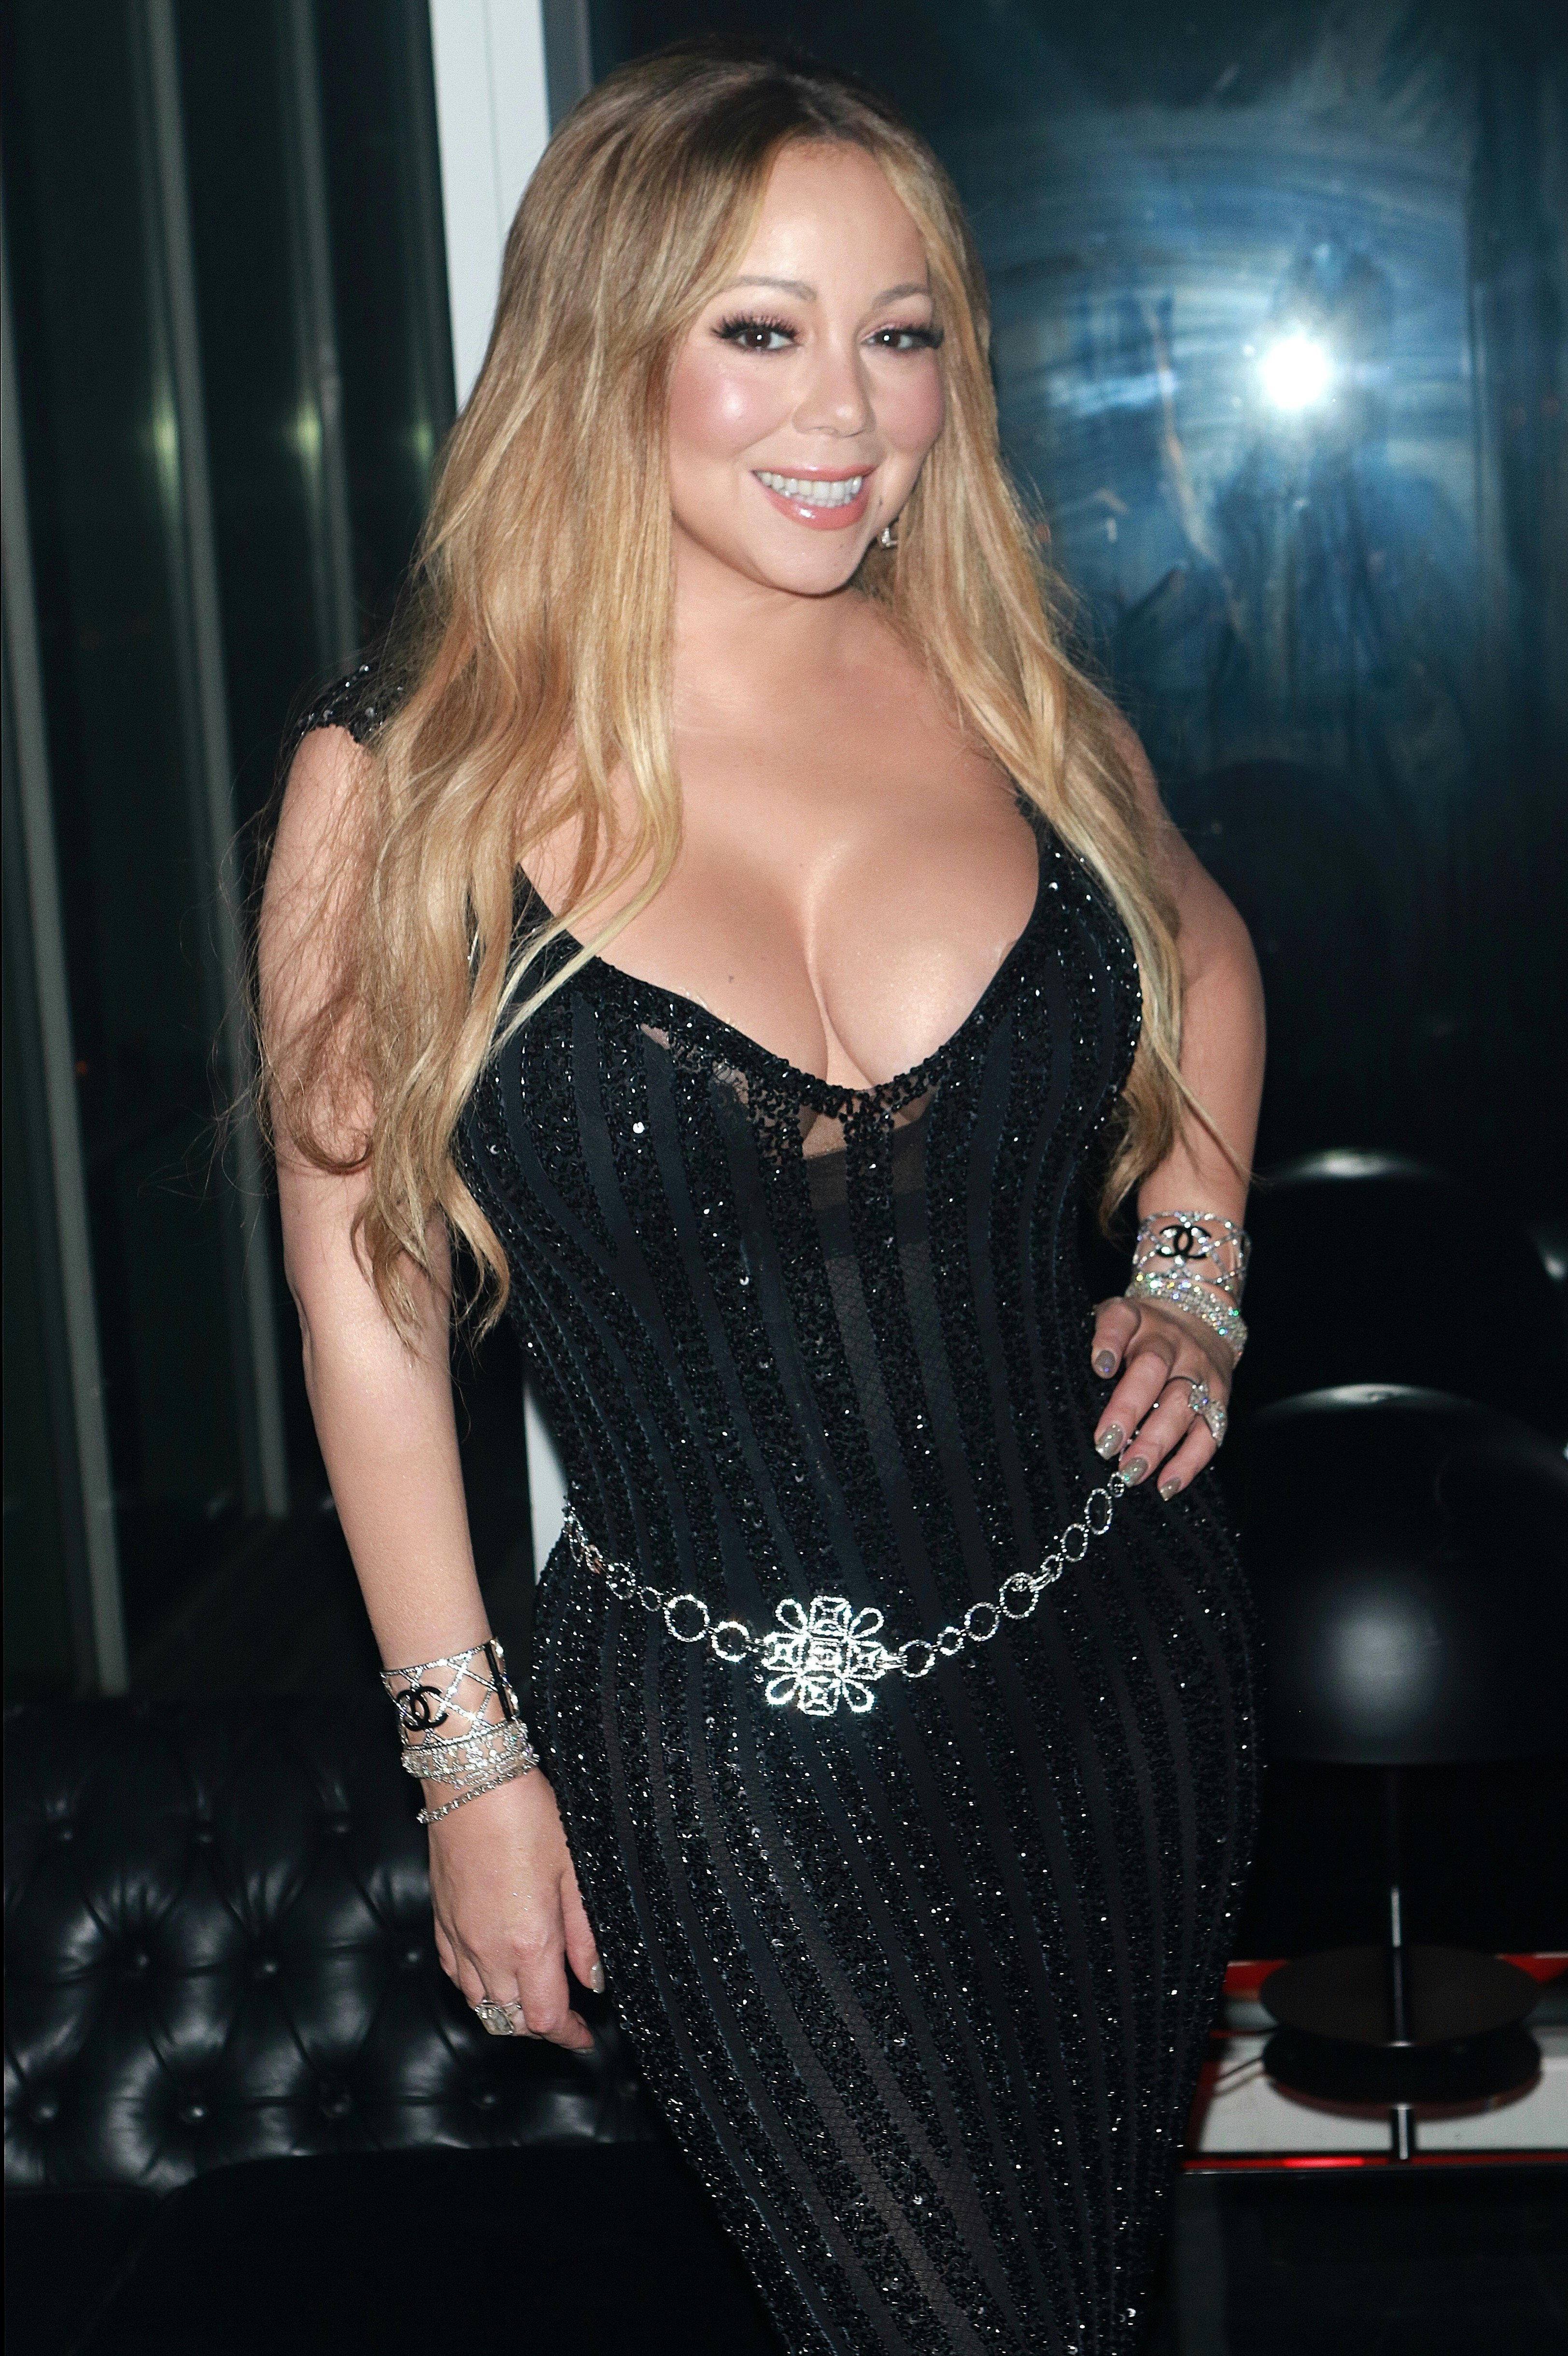 , New York, NY - 10/23/17 Mariah Carey at the after party for the V Magazine Dinner in honor of Karl Lagerfeld Le Bain.  -PICTURED: Mariah Carey -, Image: 353759897, License: Rights-managed, Restrictions: , Model Release: no, Credit line: Profimedia, INSTAR Images